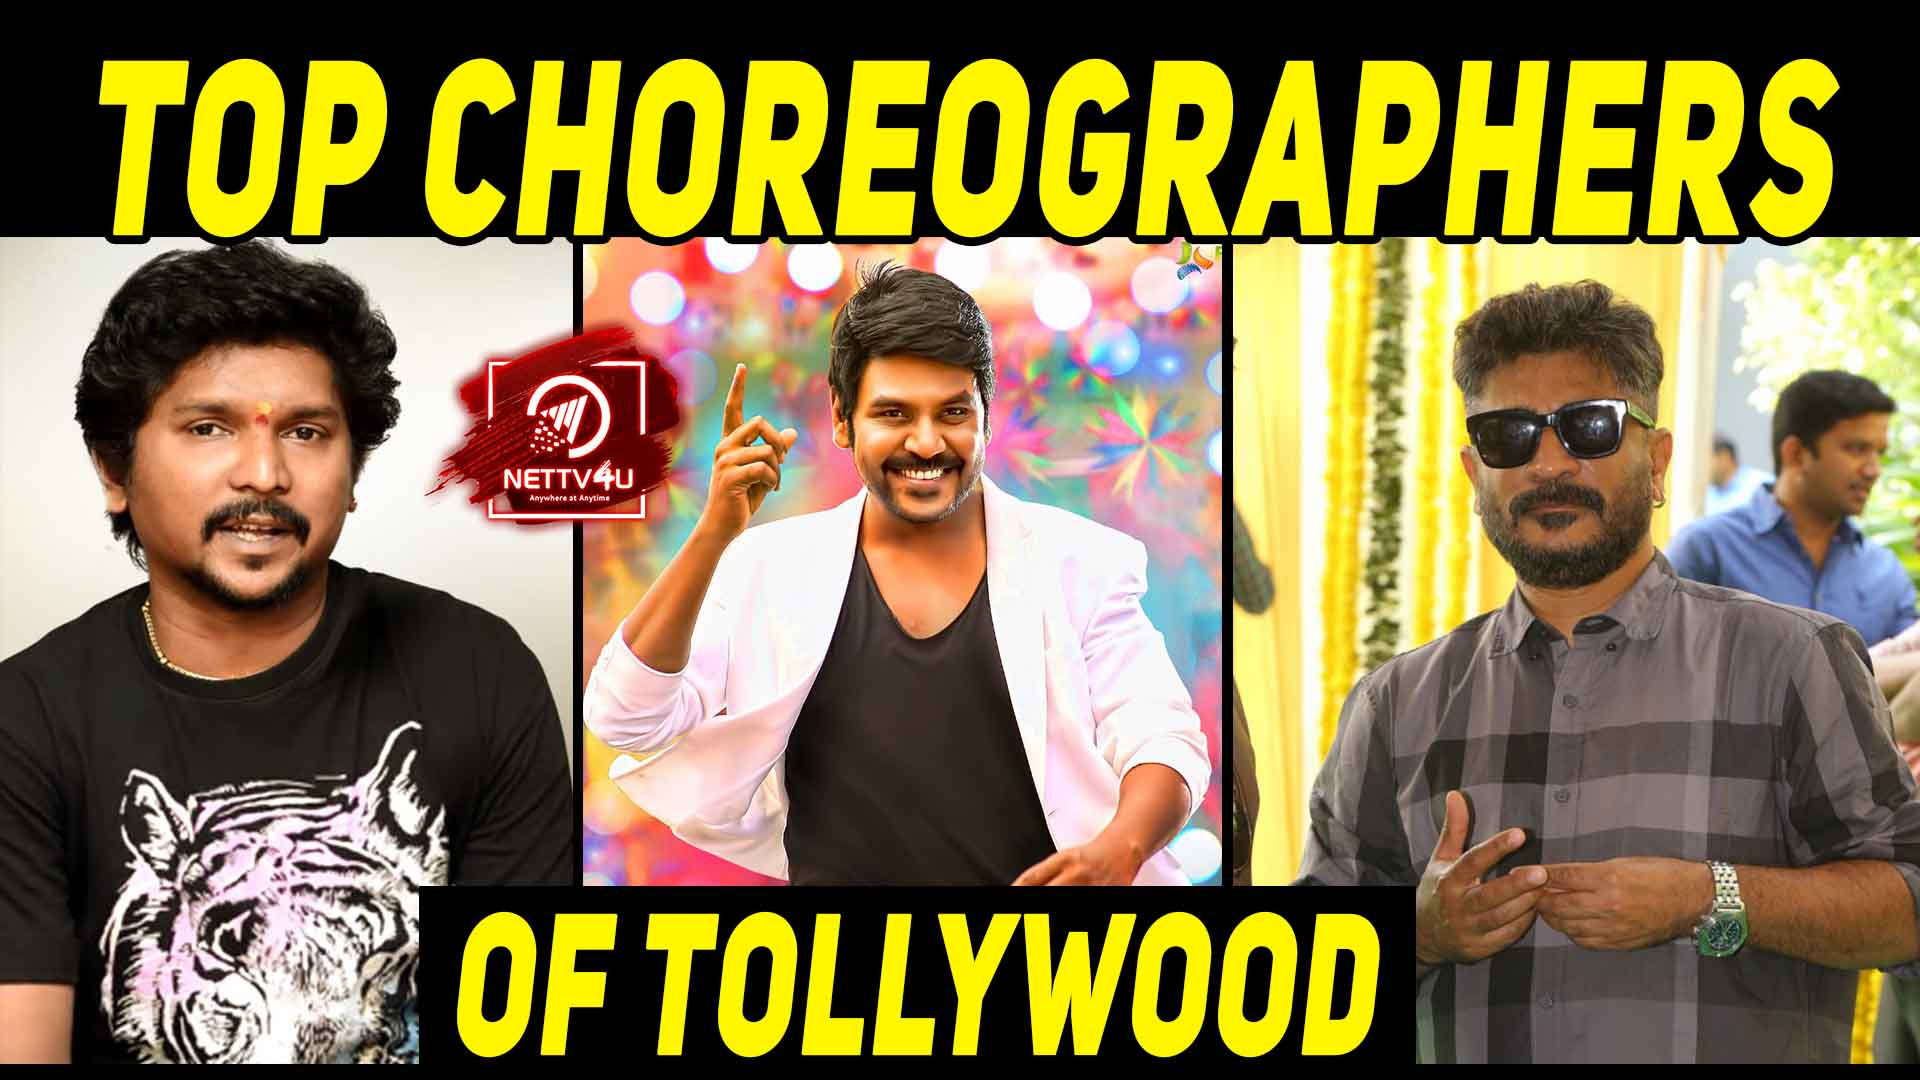 Top Choreographers Of Tollywood